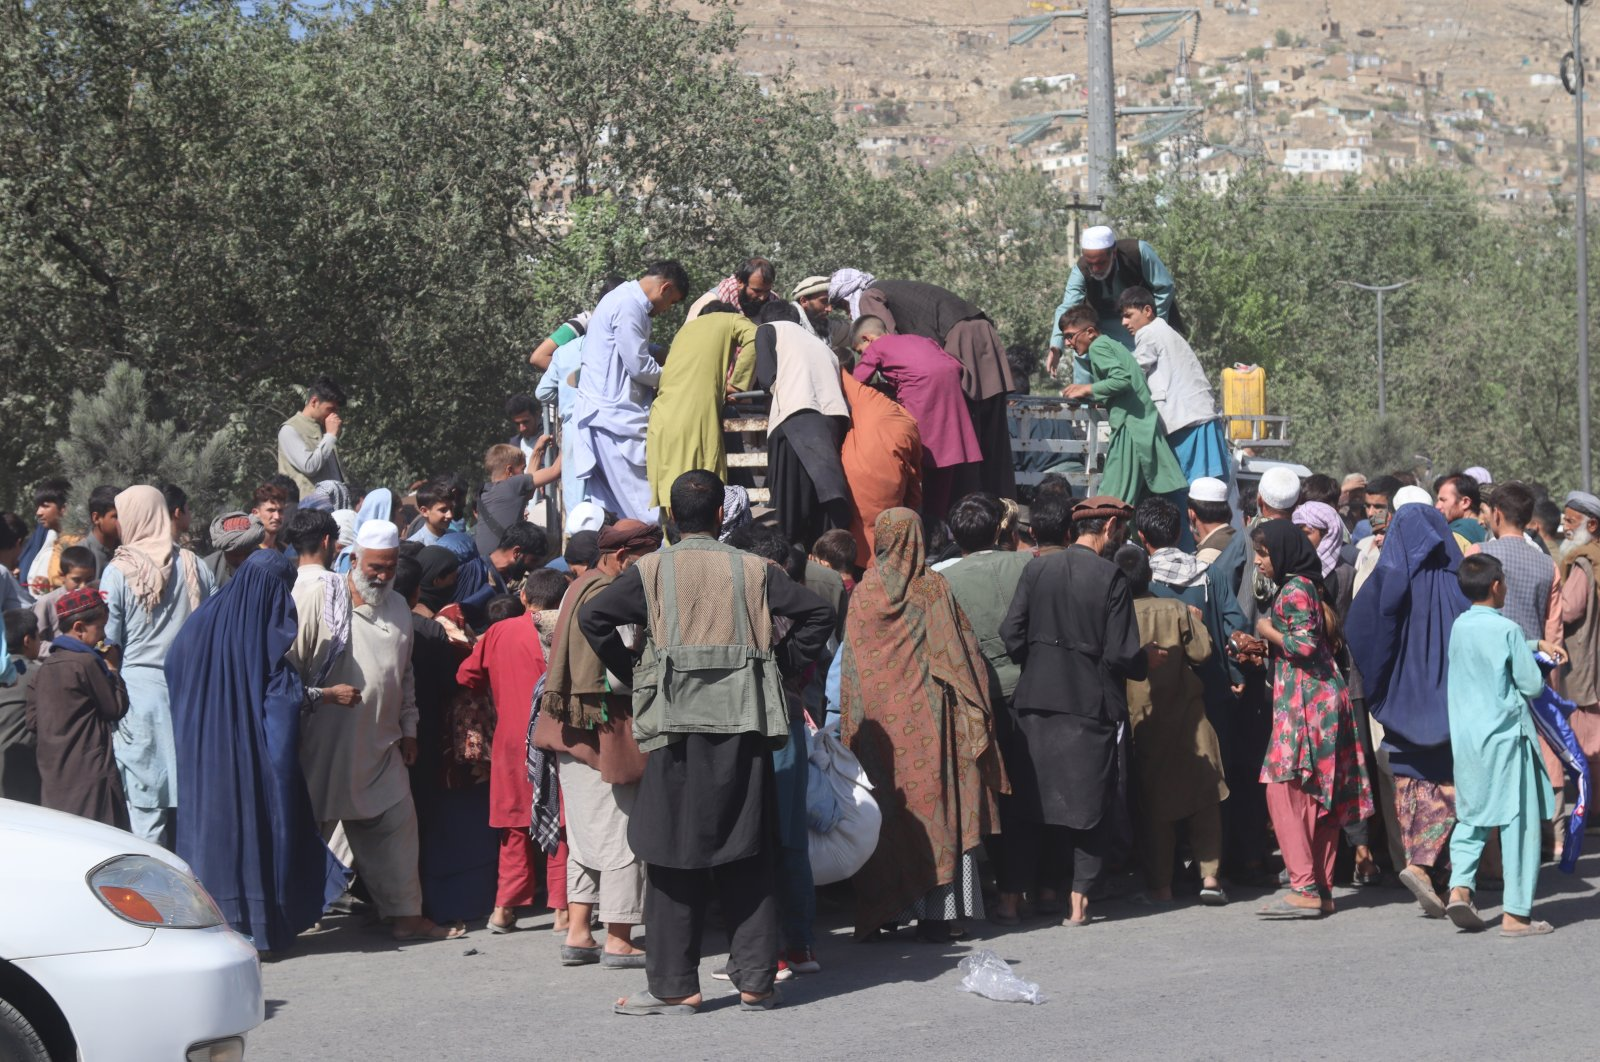 Afghans who are displaced from Kunduz and Takhar provinces due to fighting between Taliban and Afghan forces gather to collect food, as they live in temporary shelters at a camp in Kabul, Afghanistan, Aug. 10, 2021. (EPA-EFE Photo)